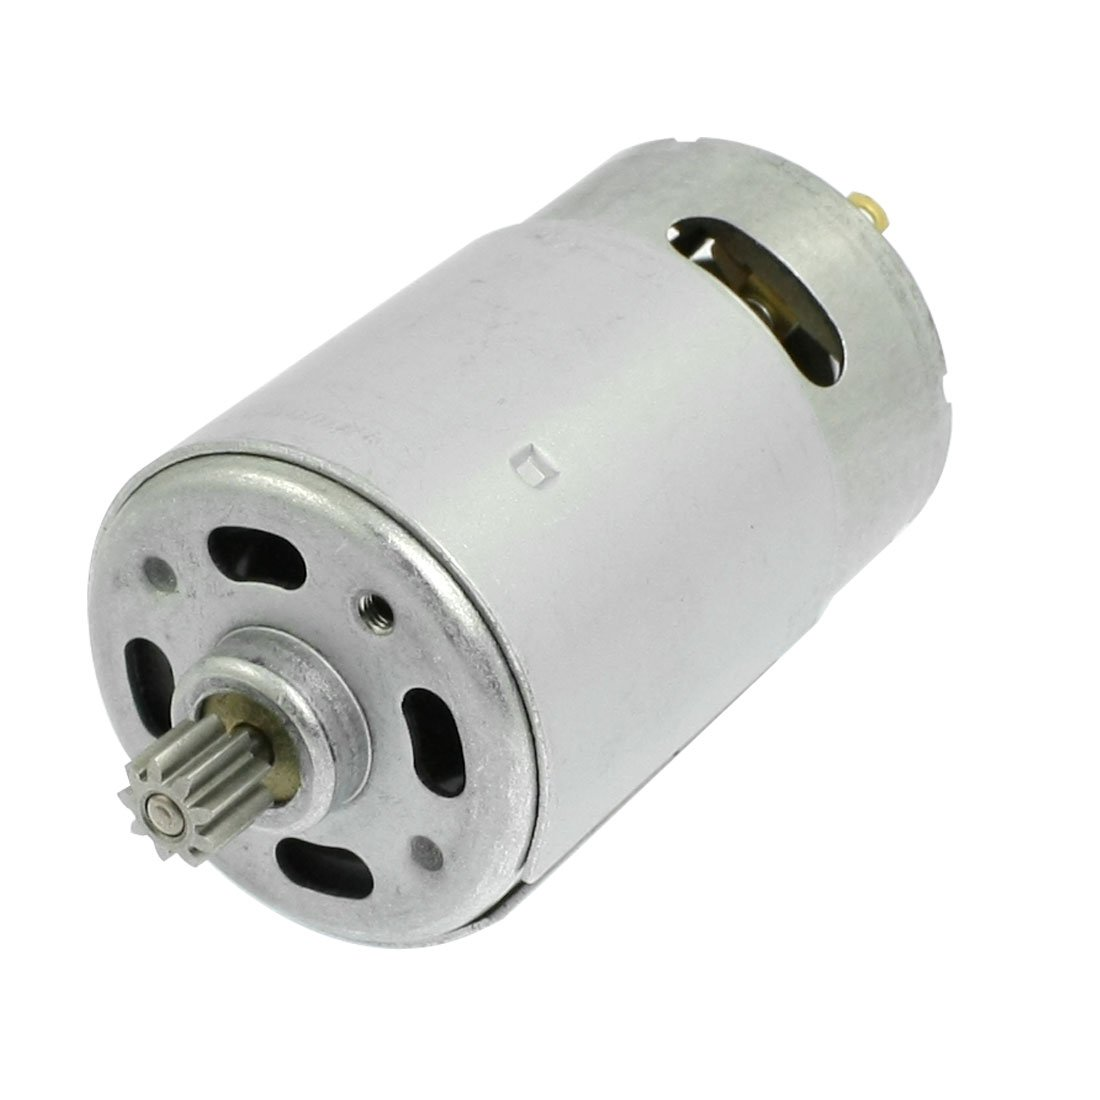 uxcell DC 18V 32000RPM 9 Teeth Shank Gear Motor for Rechargeable Electric Drill: Electric Fan Motors: Industrial & Scientific